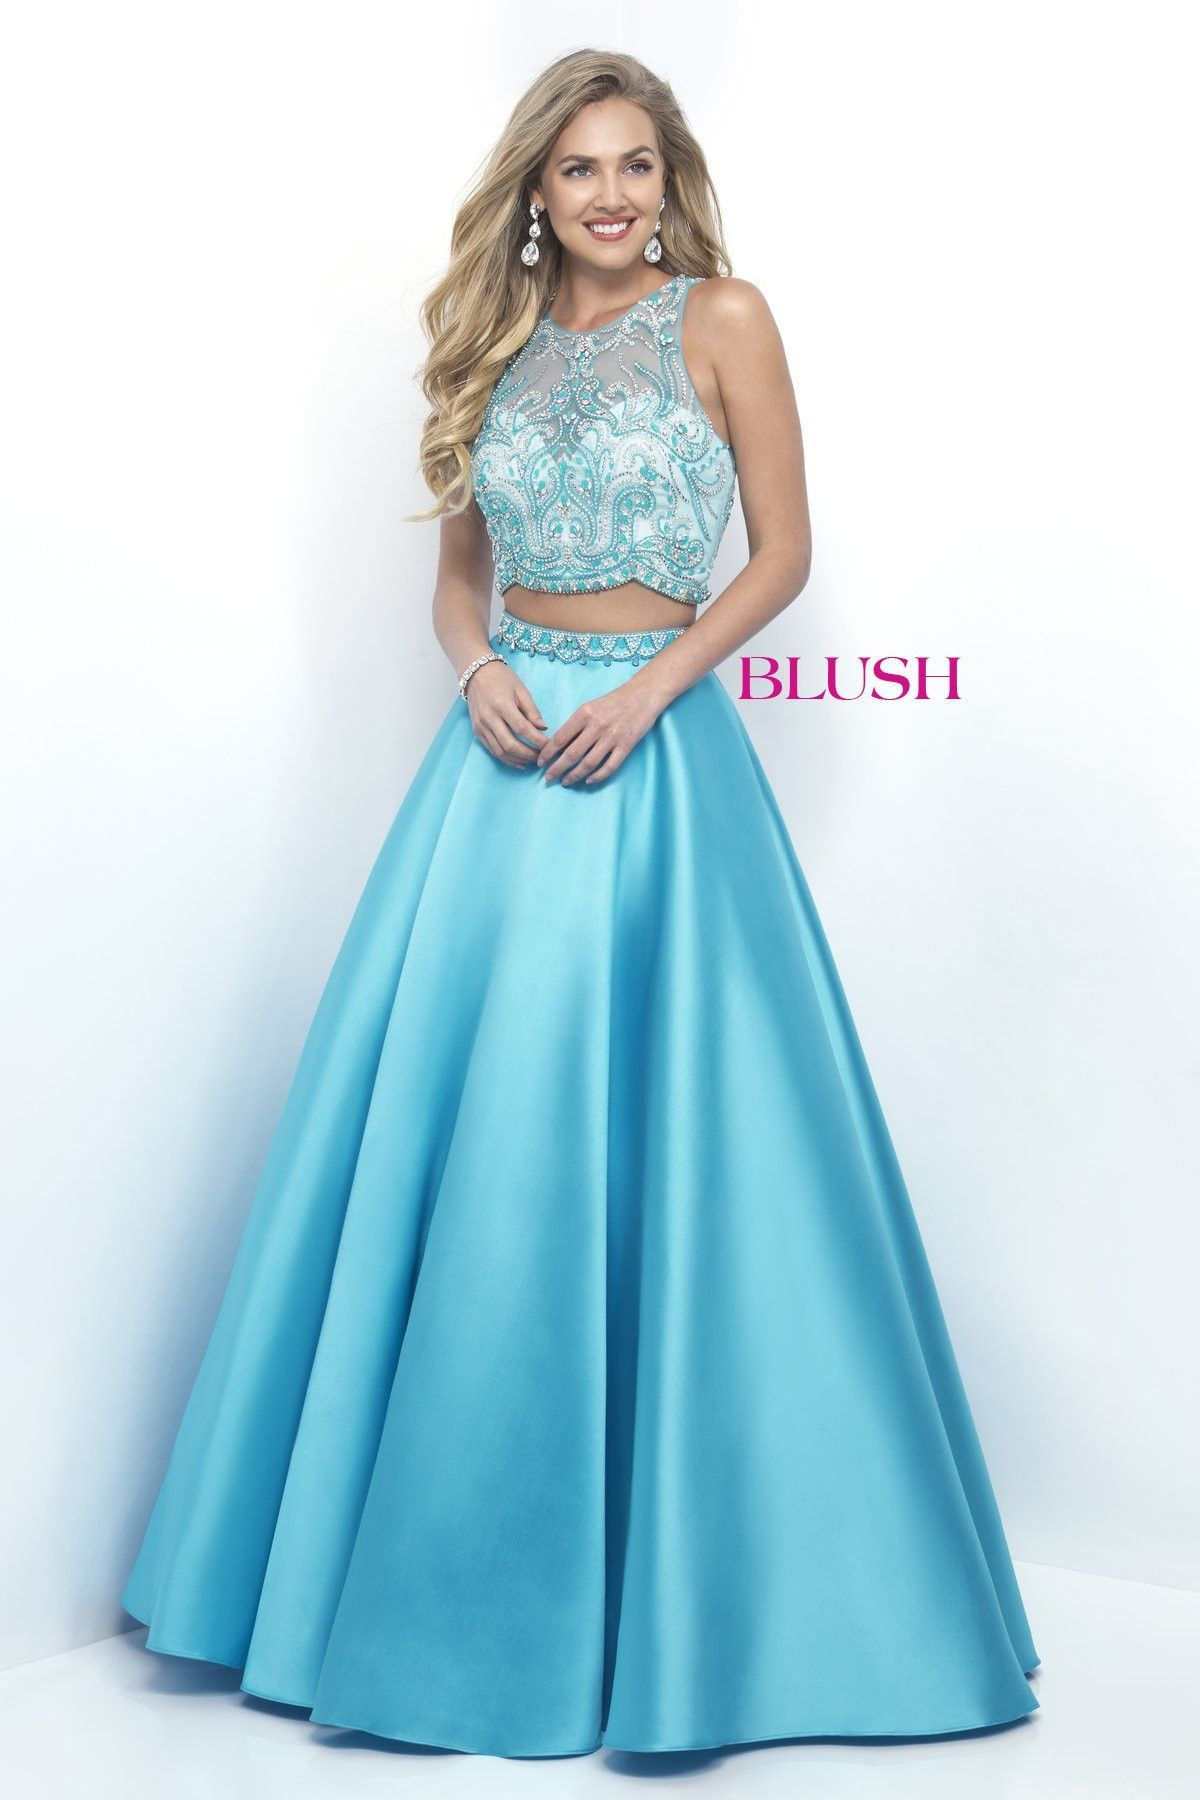 adecaef692d Pink by Blush 5619 Sky Blue Beaded Two-Piece Prom Dress